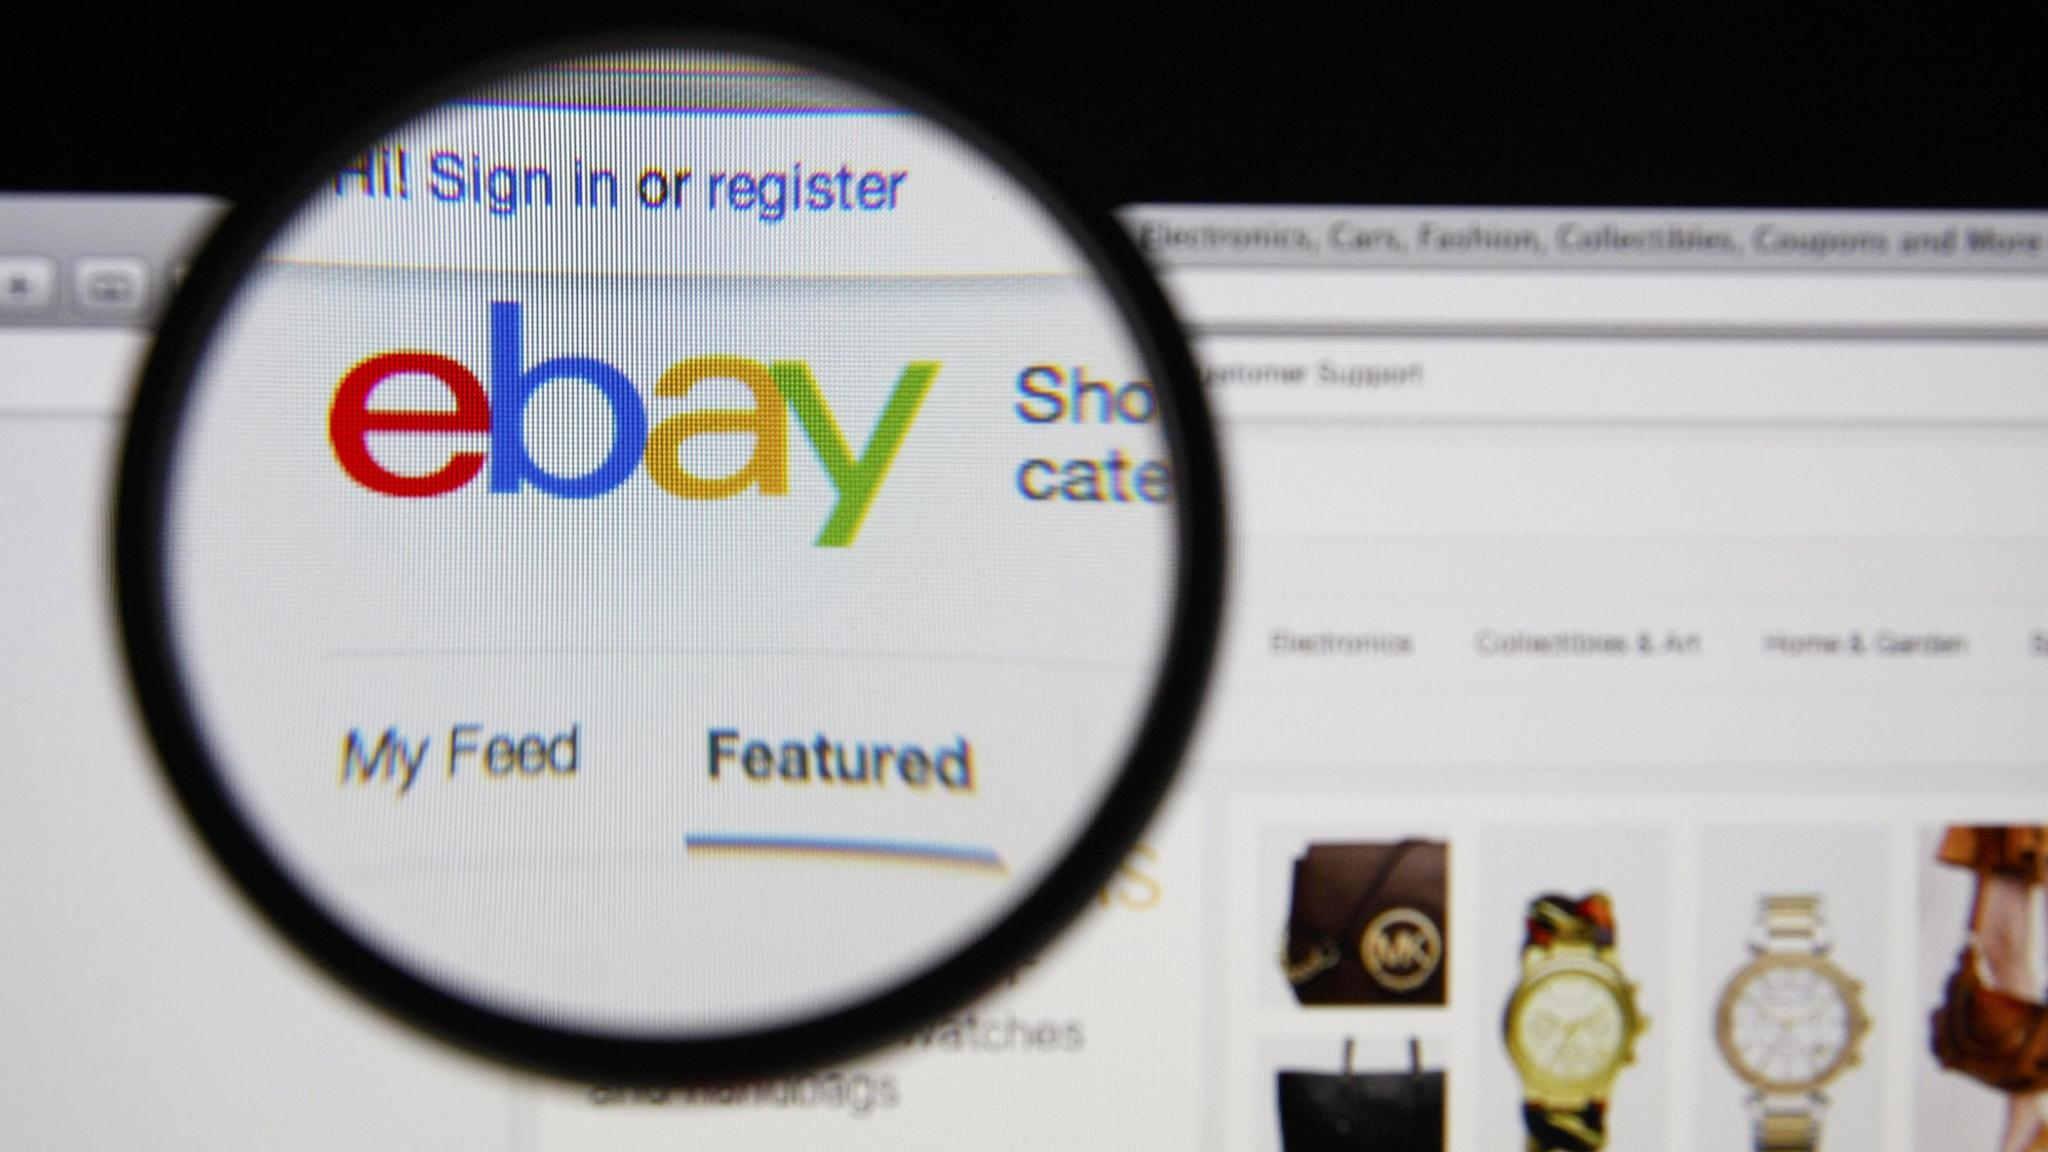 ebay reveals cyber attack on database financial times